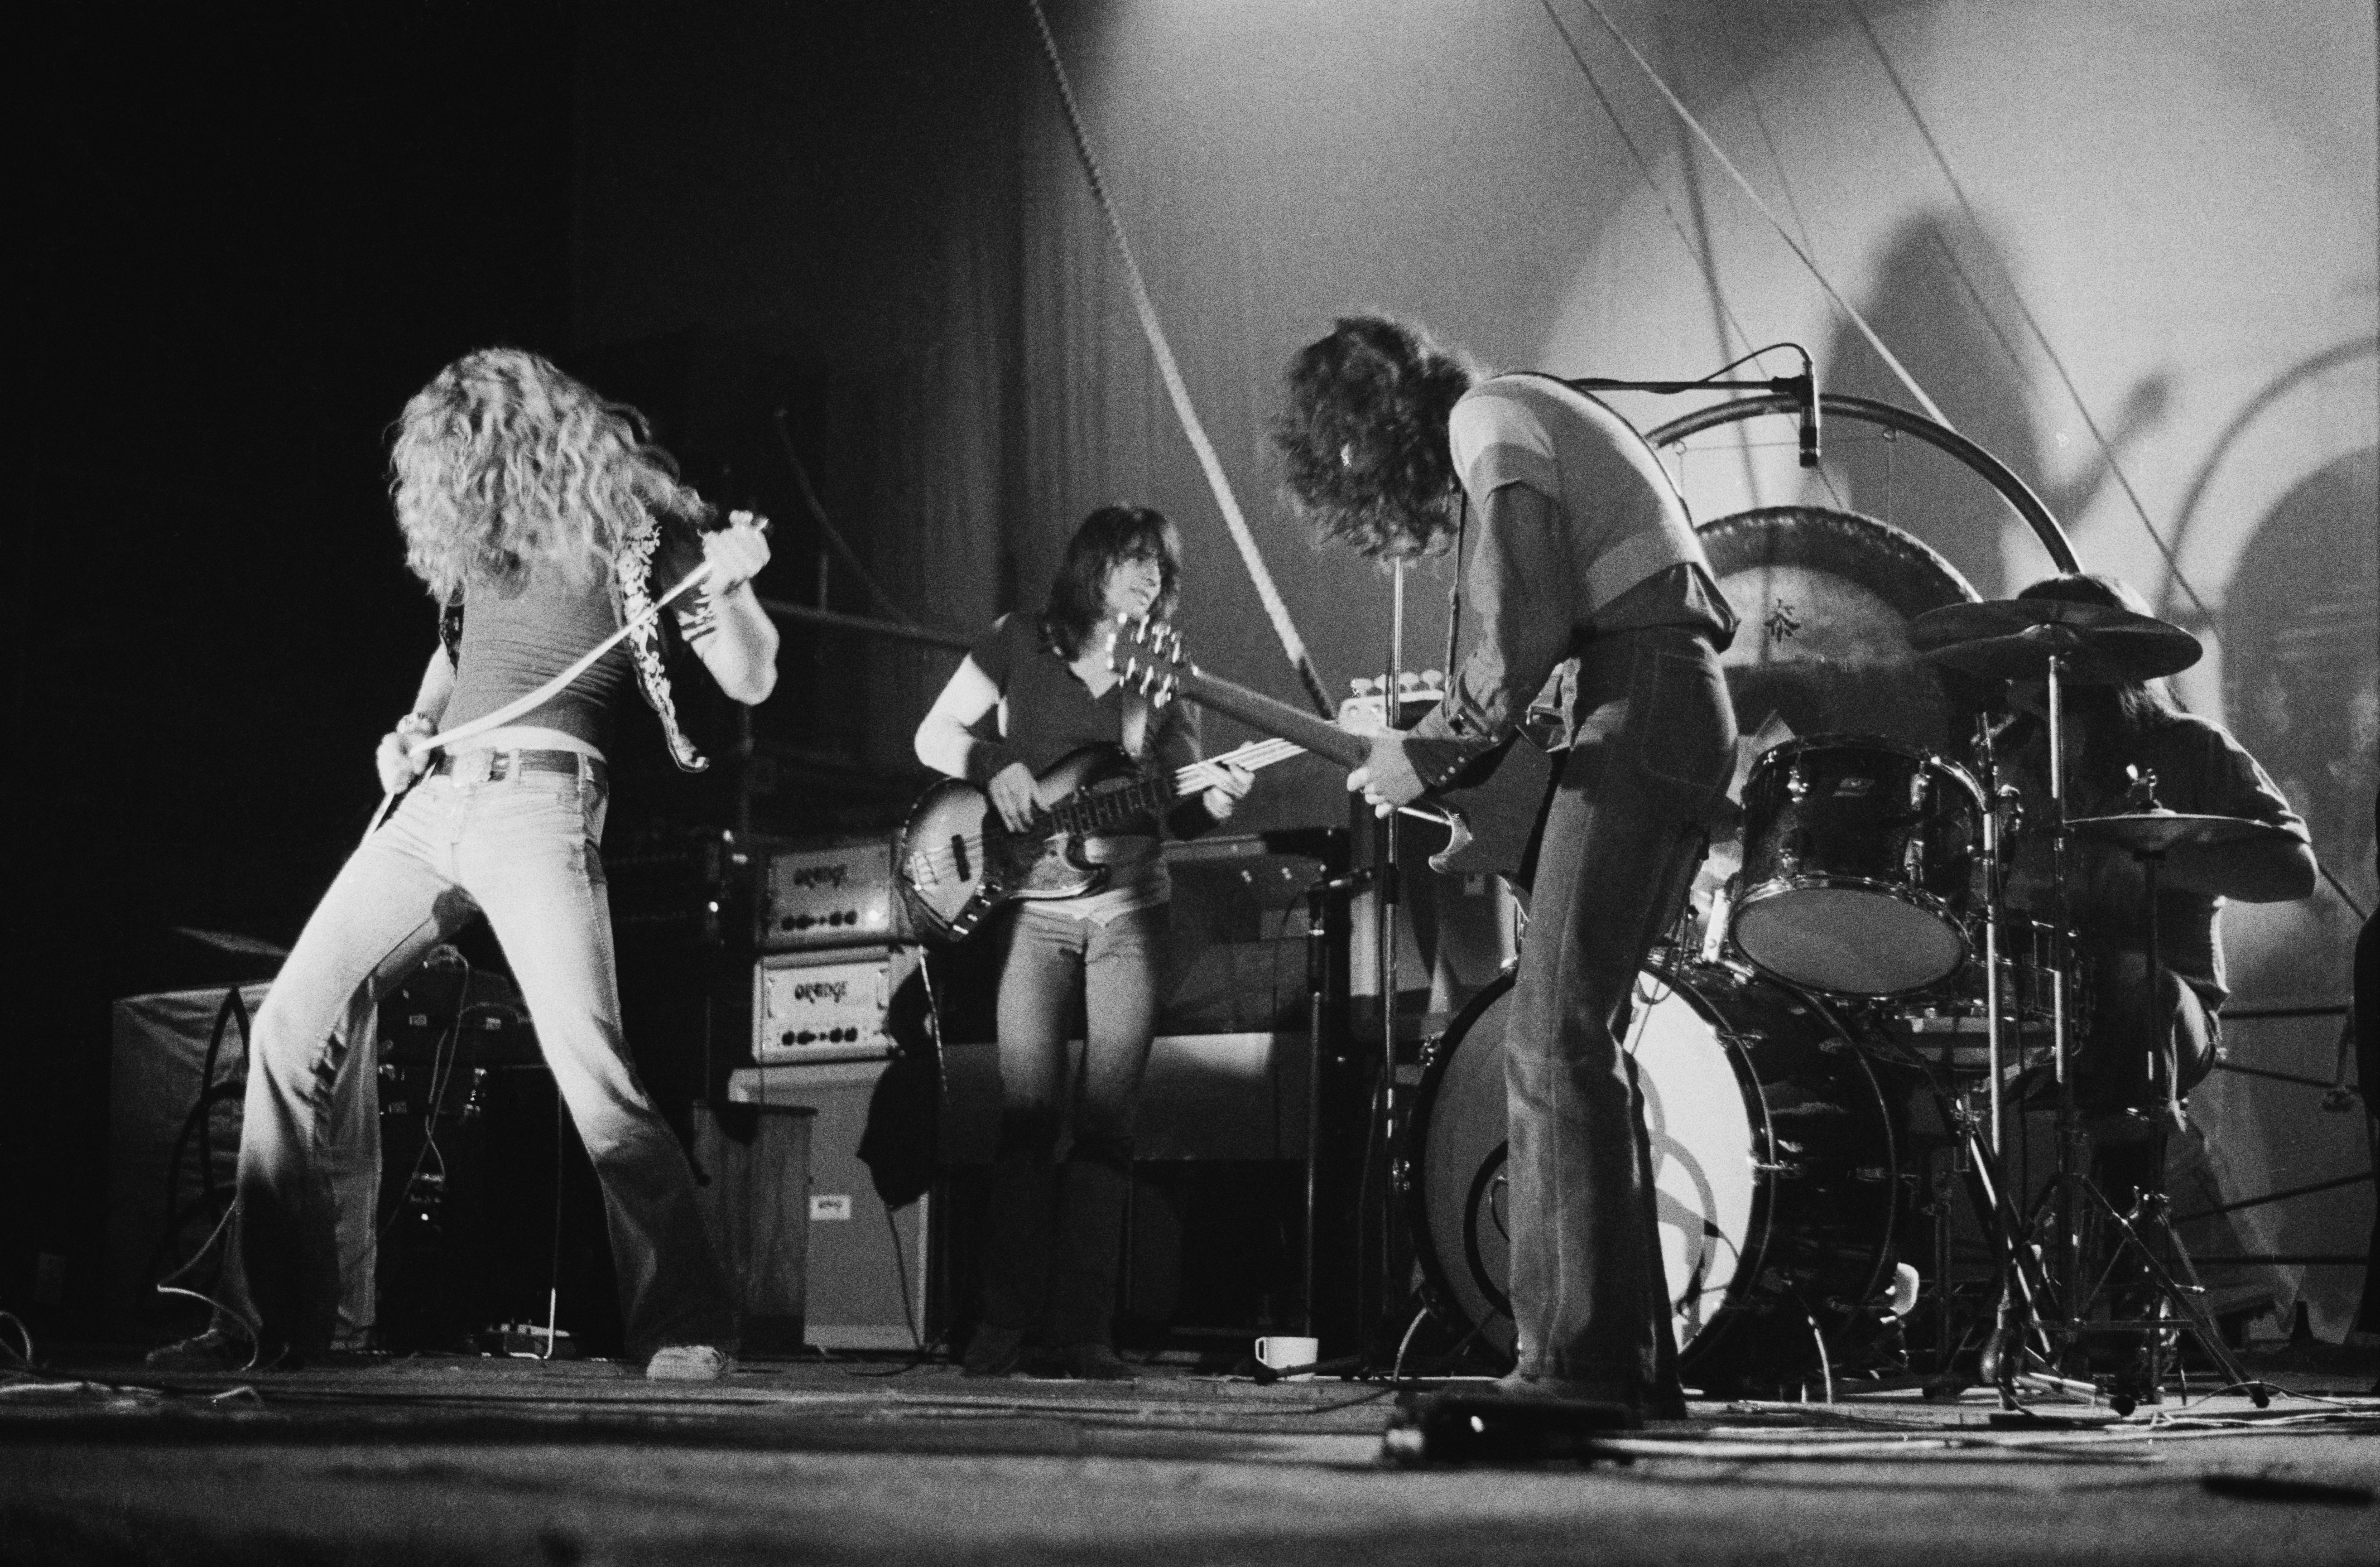 English rock group Led Zeppelin performing at the Empire Pool, Wembley, London, 23rd November 1971. Left to right: Robert Pla